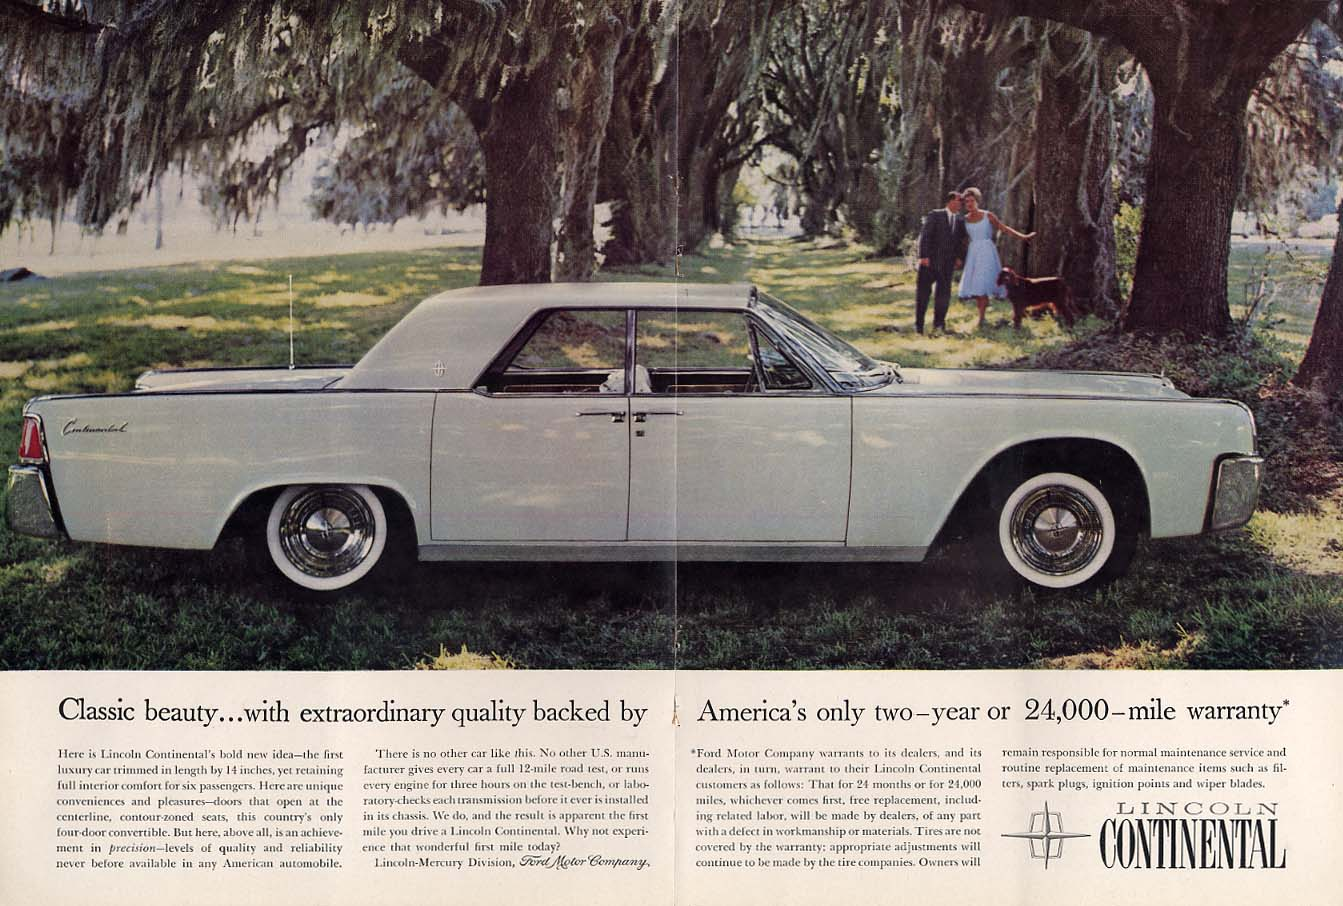 Classic beauty backed by the only 2-year 24000-mile warranty - Lincoln ad 1961 N